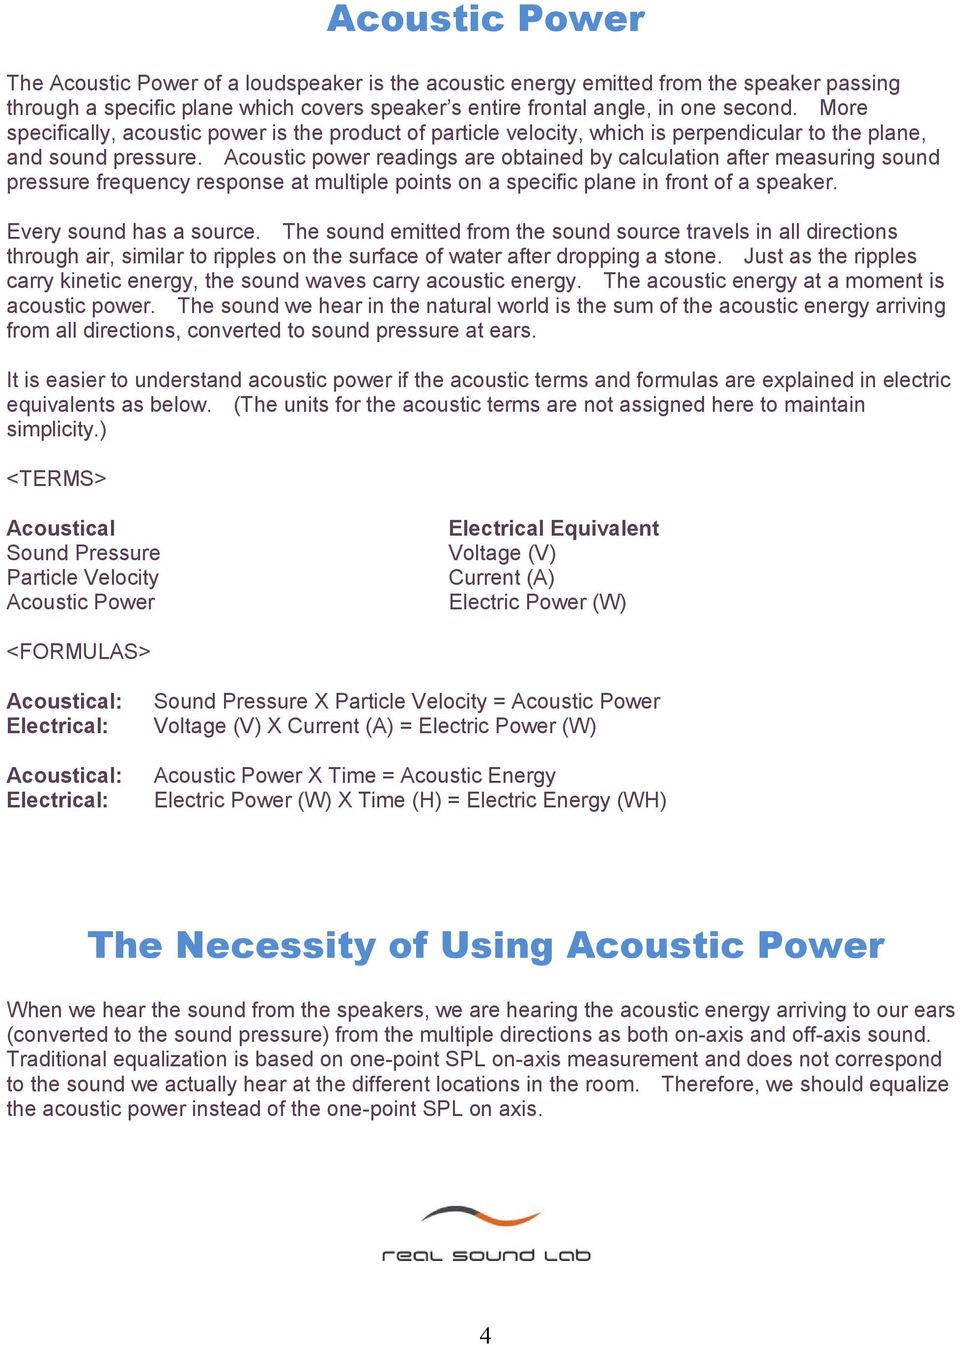 Acoustic power readings are obtained by calculation after measuring sound pressure frequency response at multiple points on a specific plane in front of a speaker. Every sound has a source.